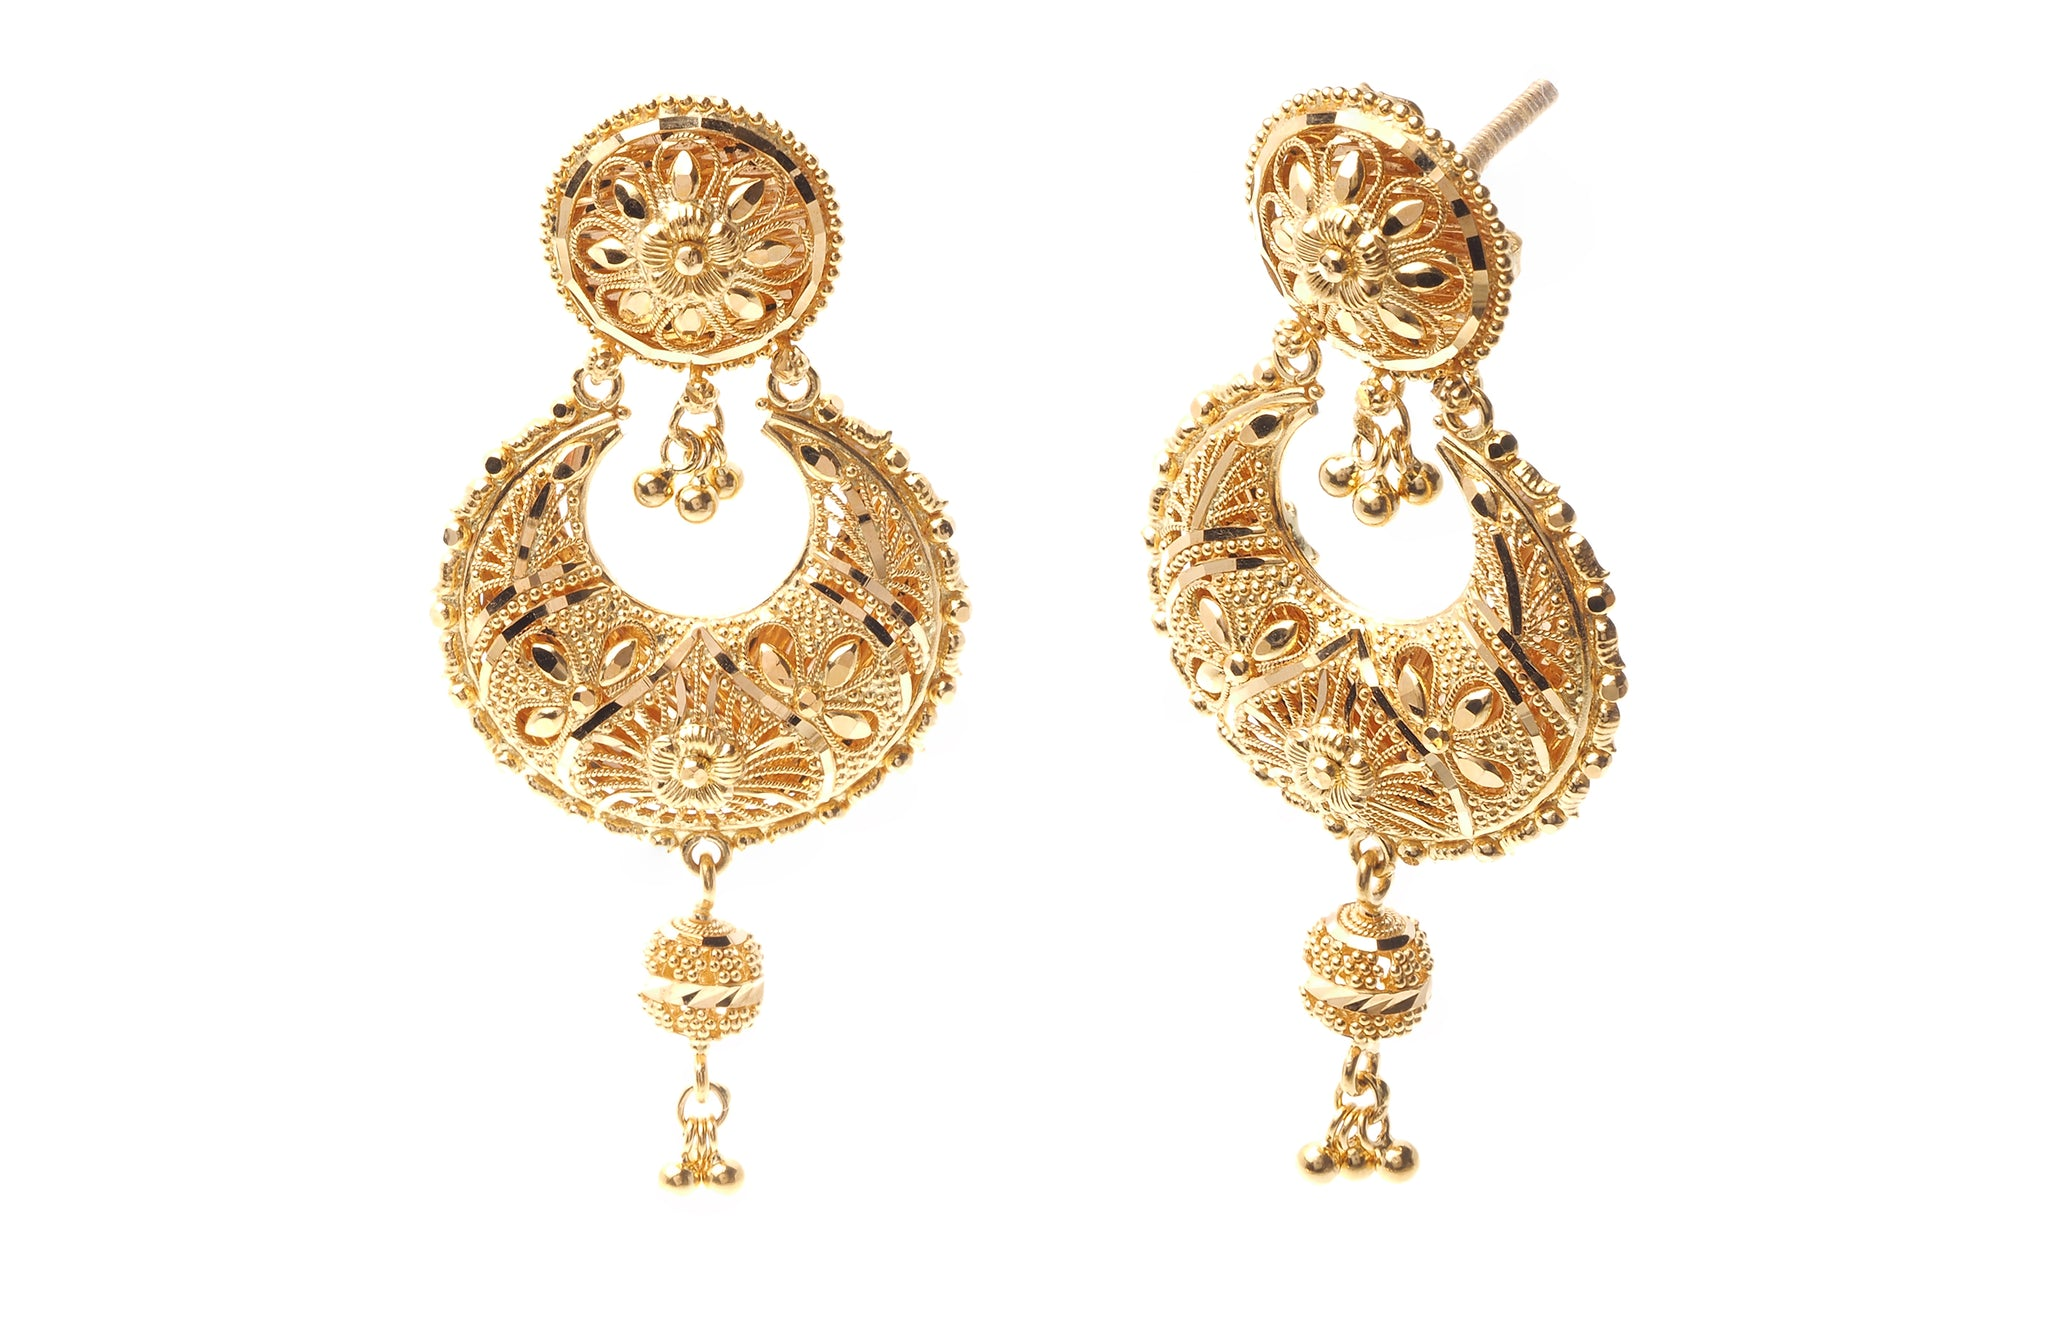 22ct Gold Necklace & Earring Bridal Set | Rani Haar | Patta with filigree design (125.4g) N&E-5940